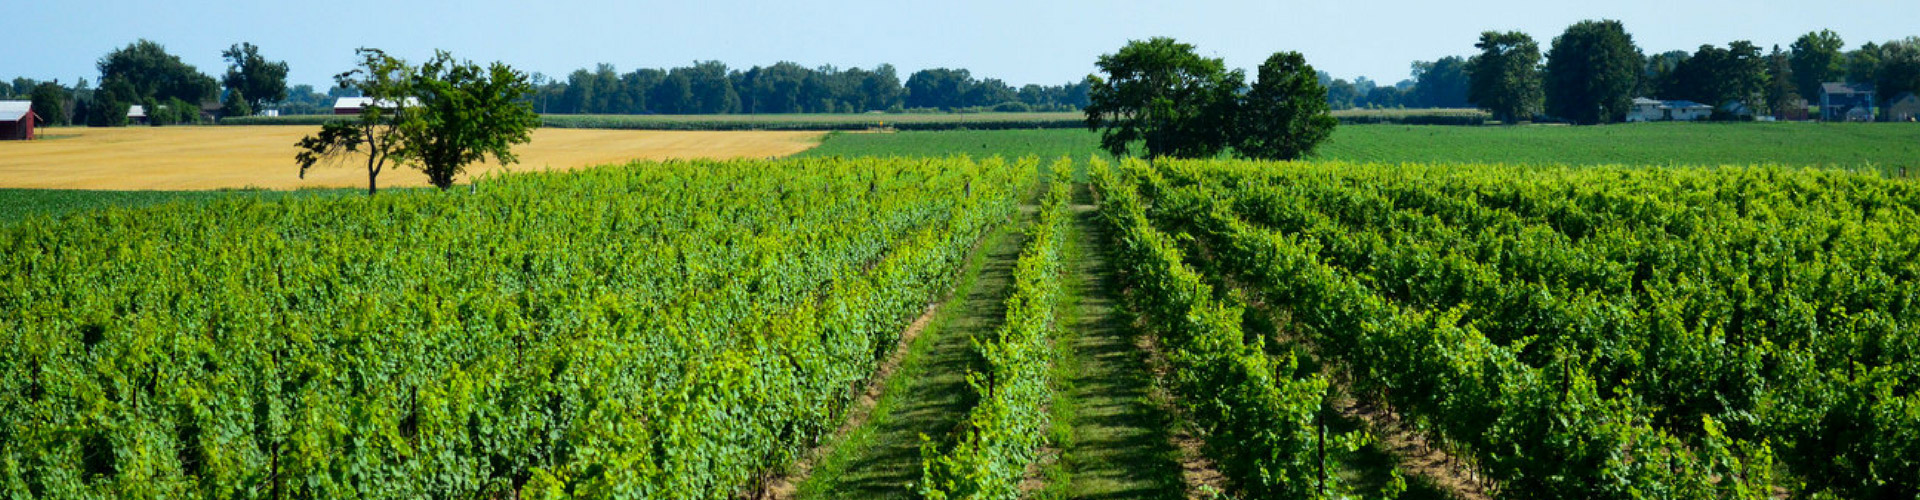 Lush green vineyard